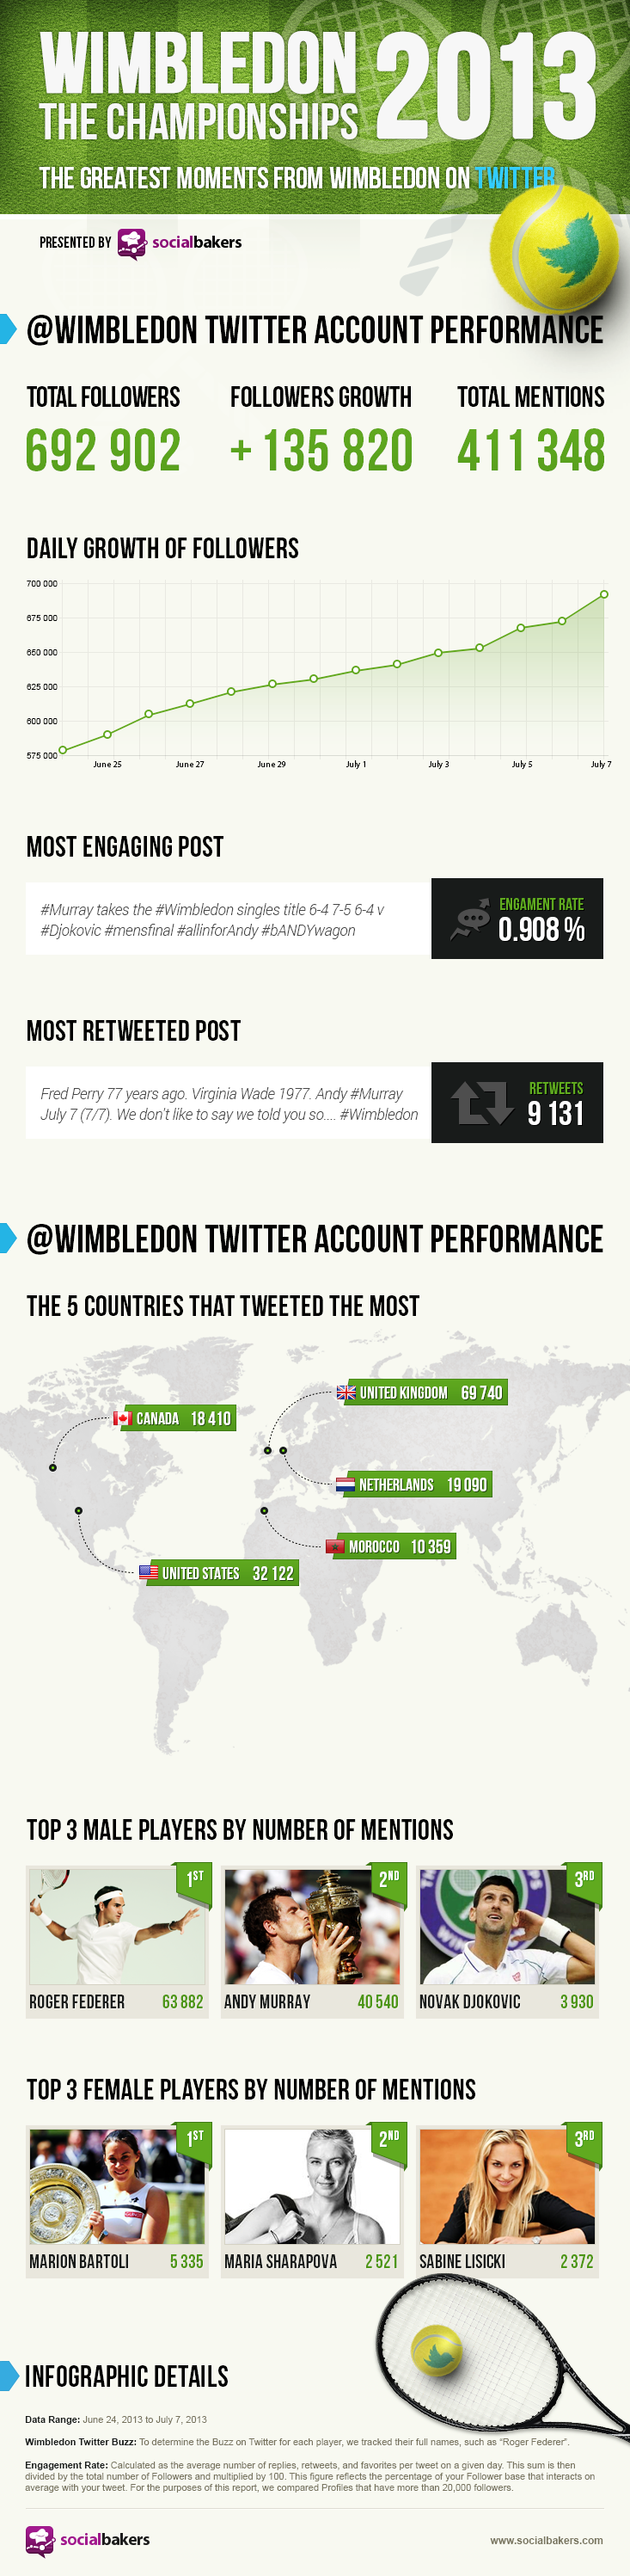 Wimbledon 2013 Craze in Numbers On Twitter